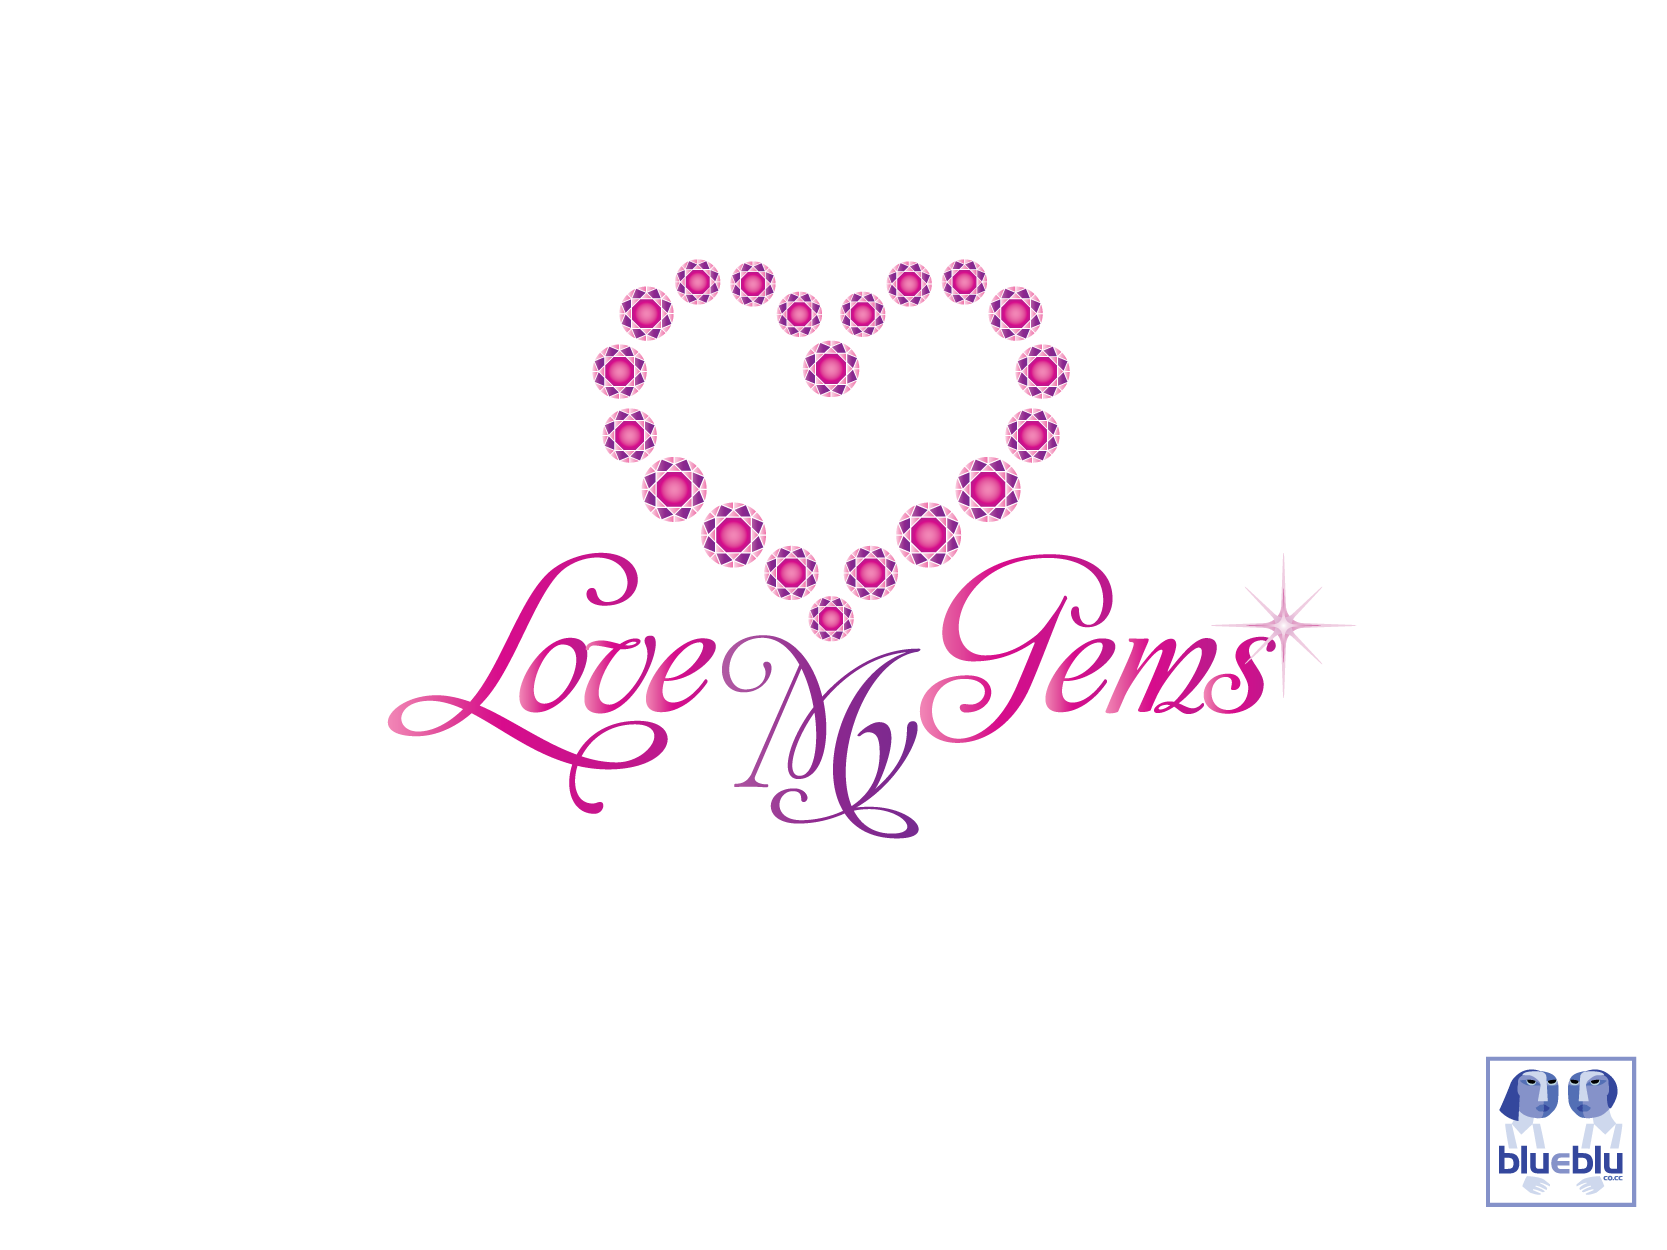 New logo wanted for Love My Gems